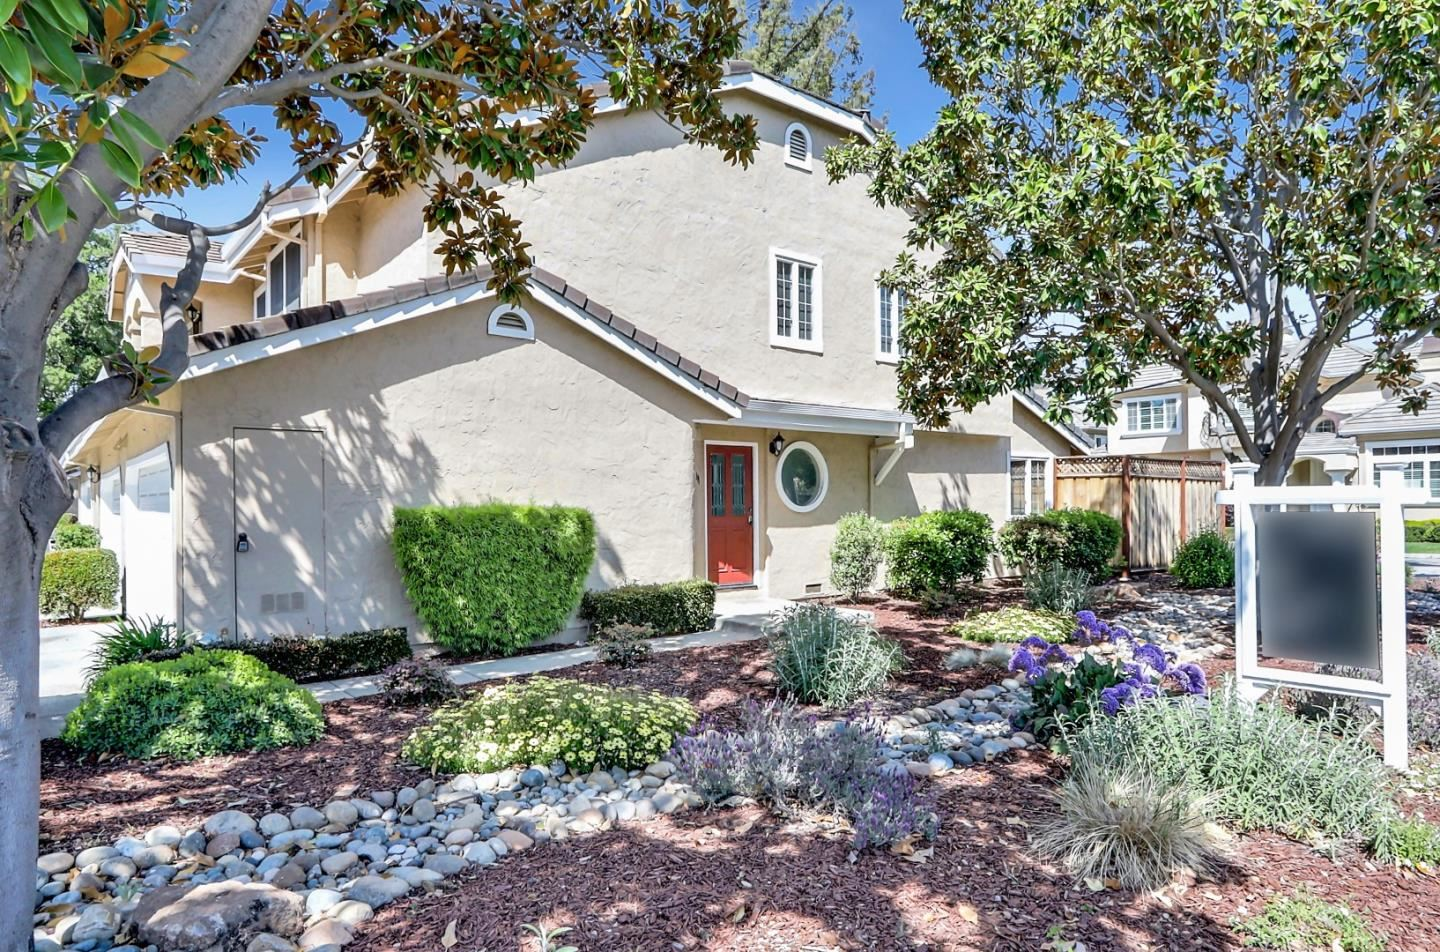 Photo for 191 Redding Road, CAMPBELL, CA 95008 (MLS # ML81840233)